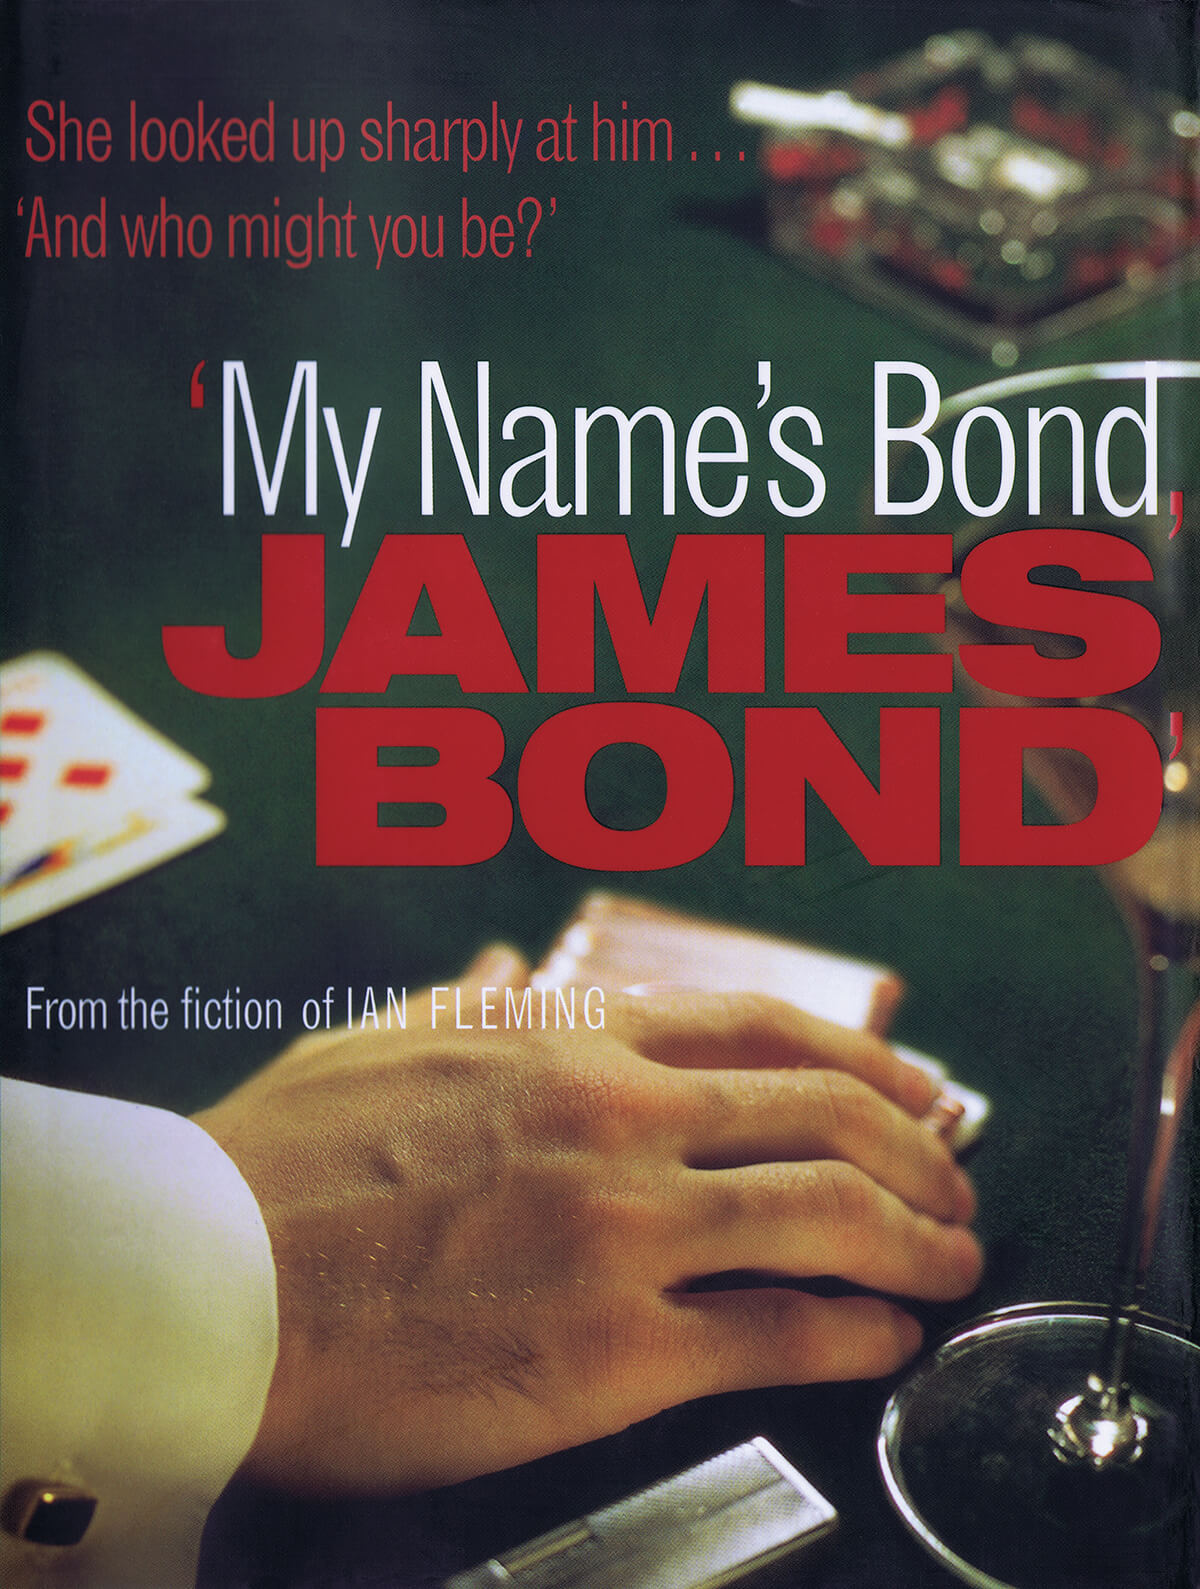 My Name's Bond, James Bond